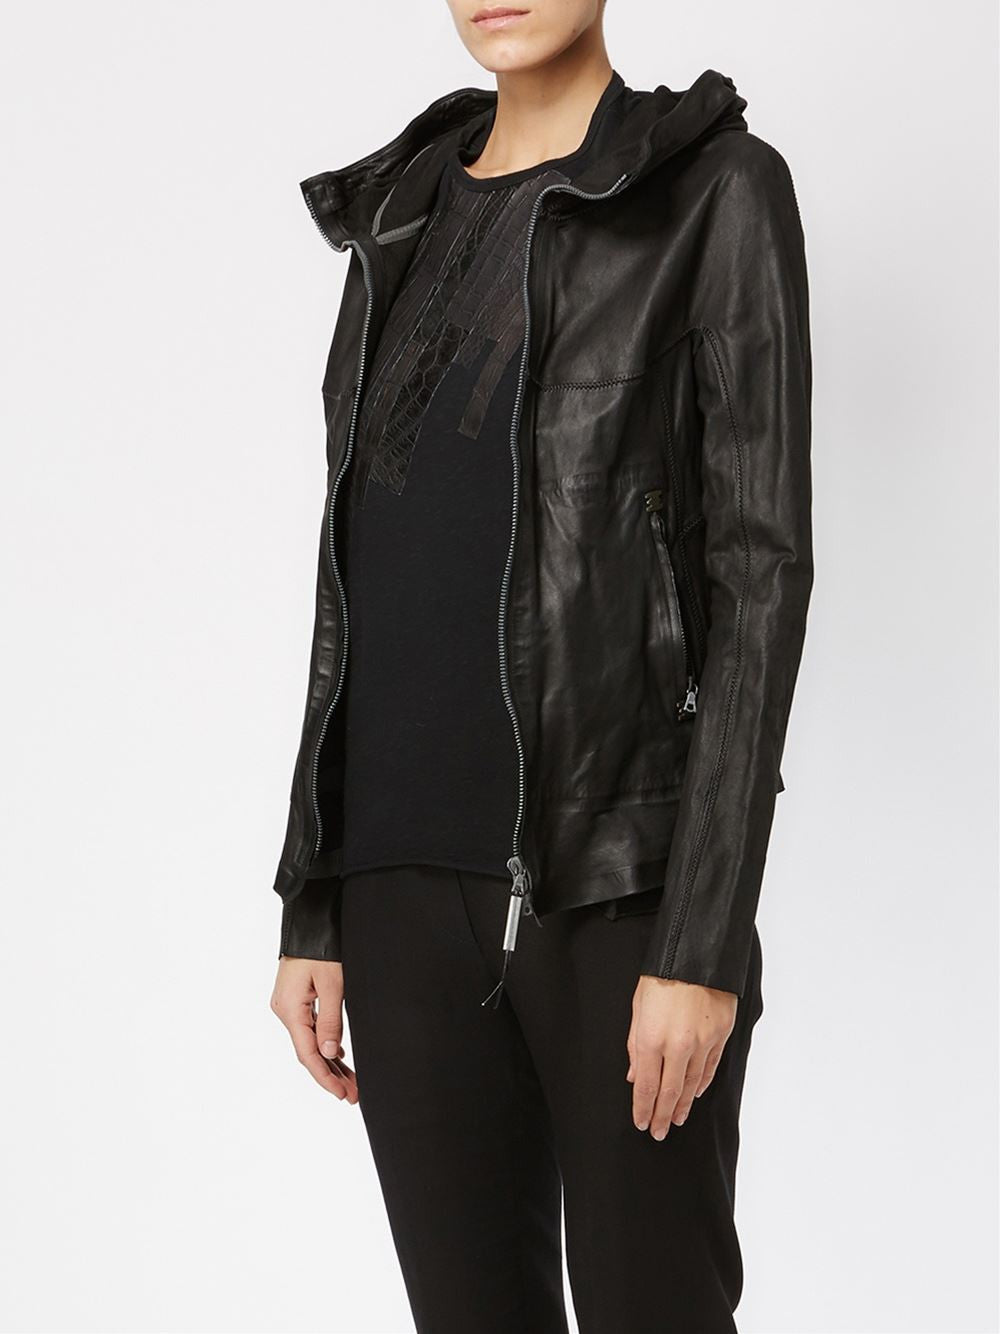 'Clandestine' Leather Jacket | CLANDESTINE